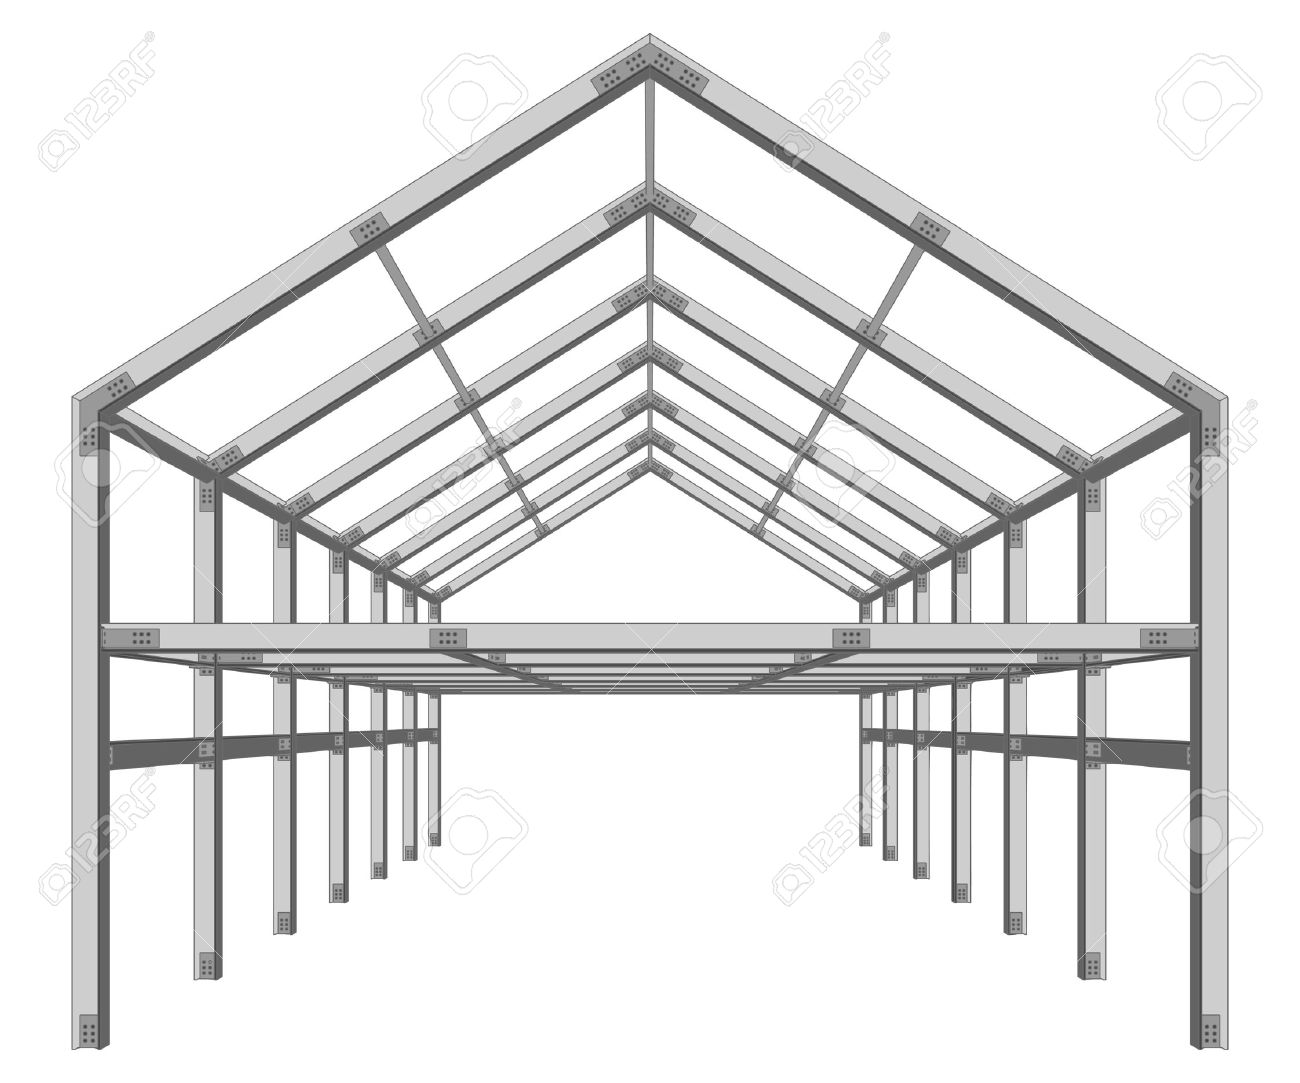 steel frame building project scheme isolated on white vector illustration - 30799464